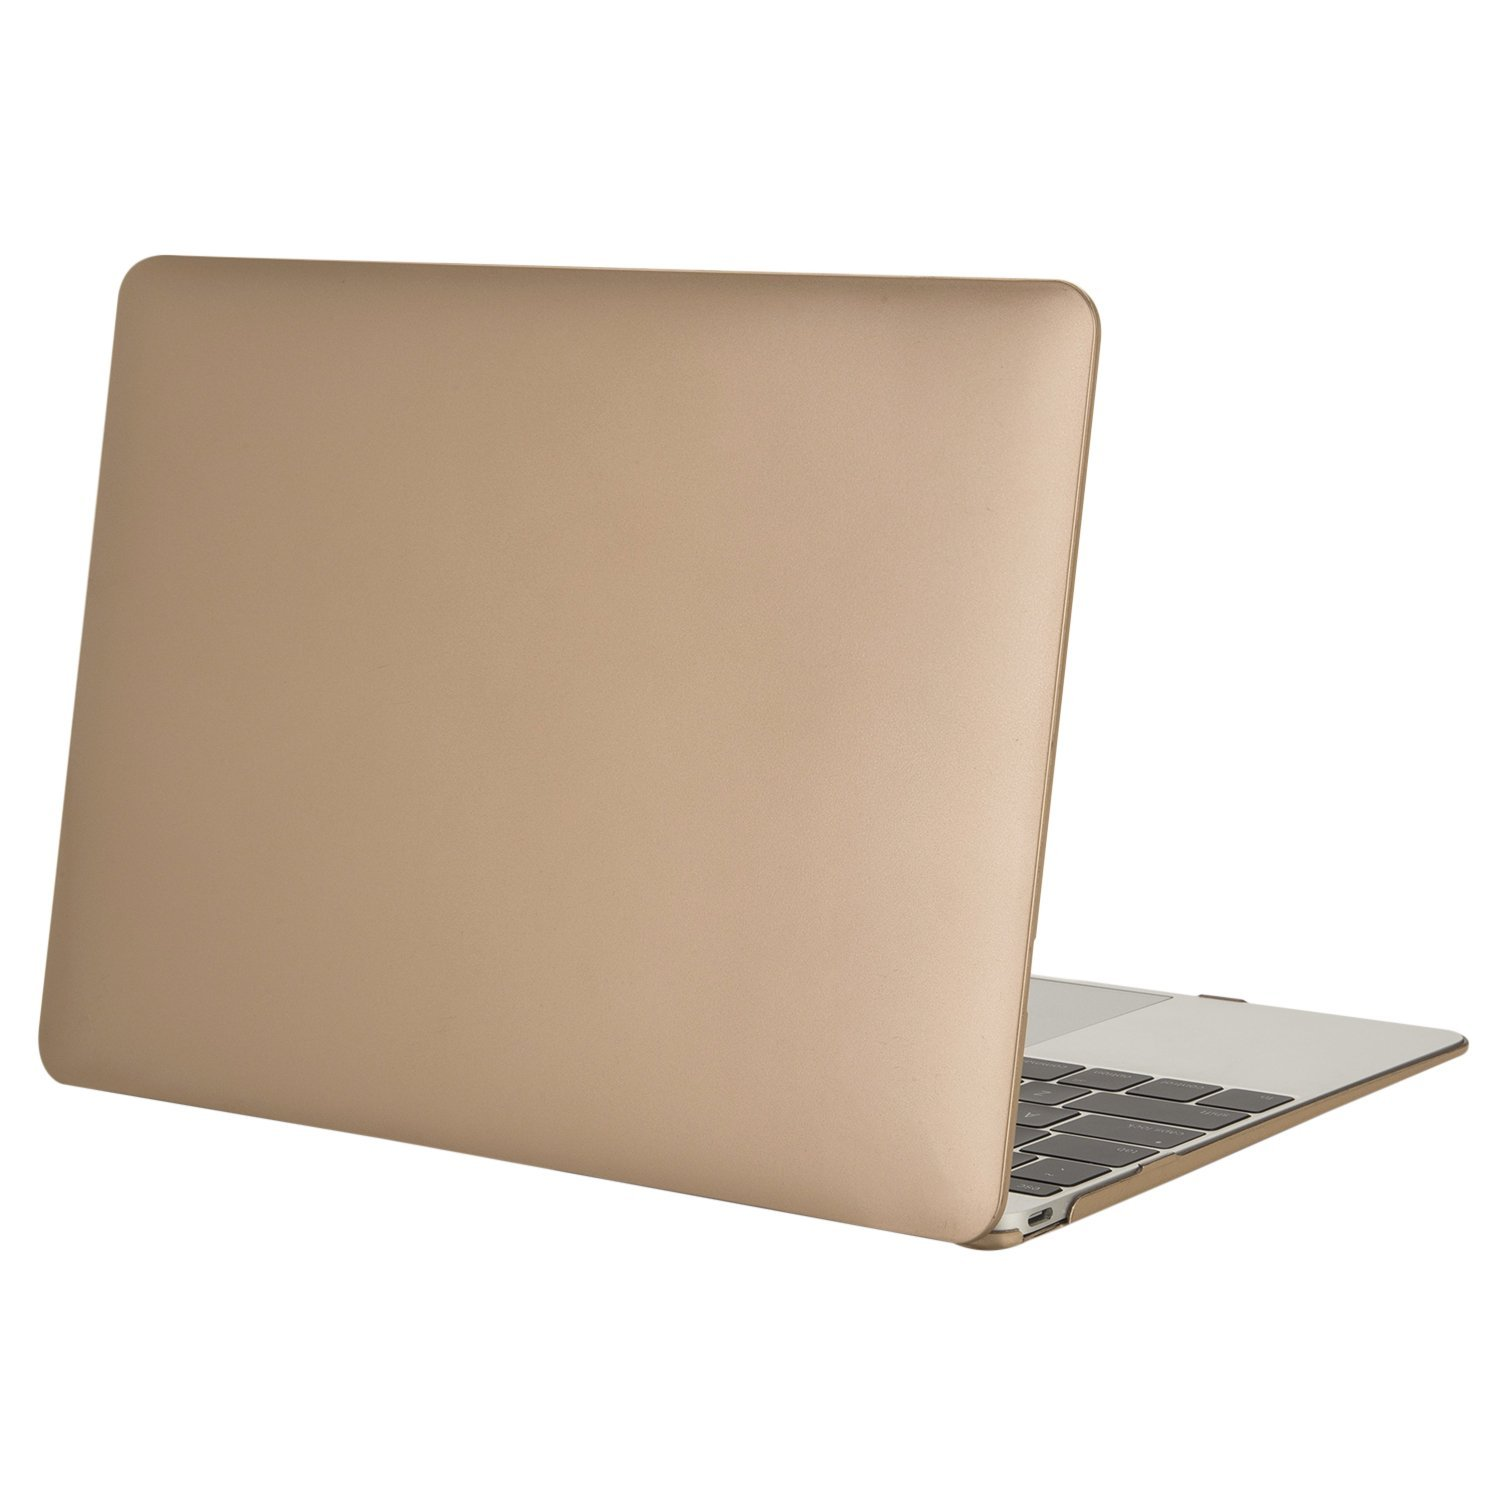 "CODEGEN 12"" MACBOOK SERT KILIF GOLD CM-120GO"